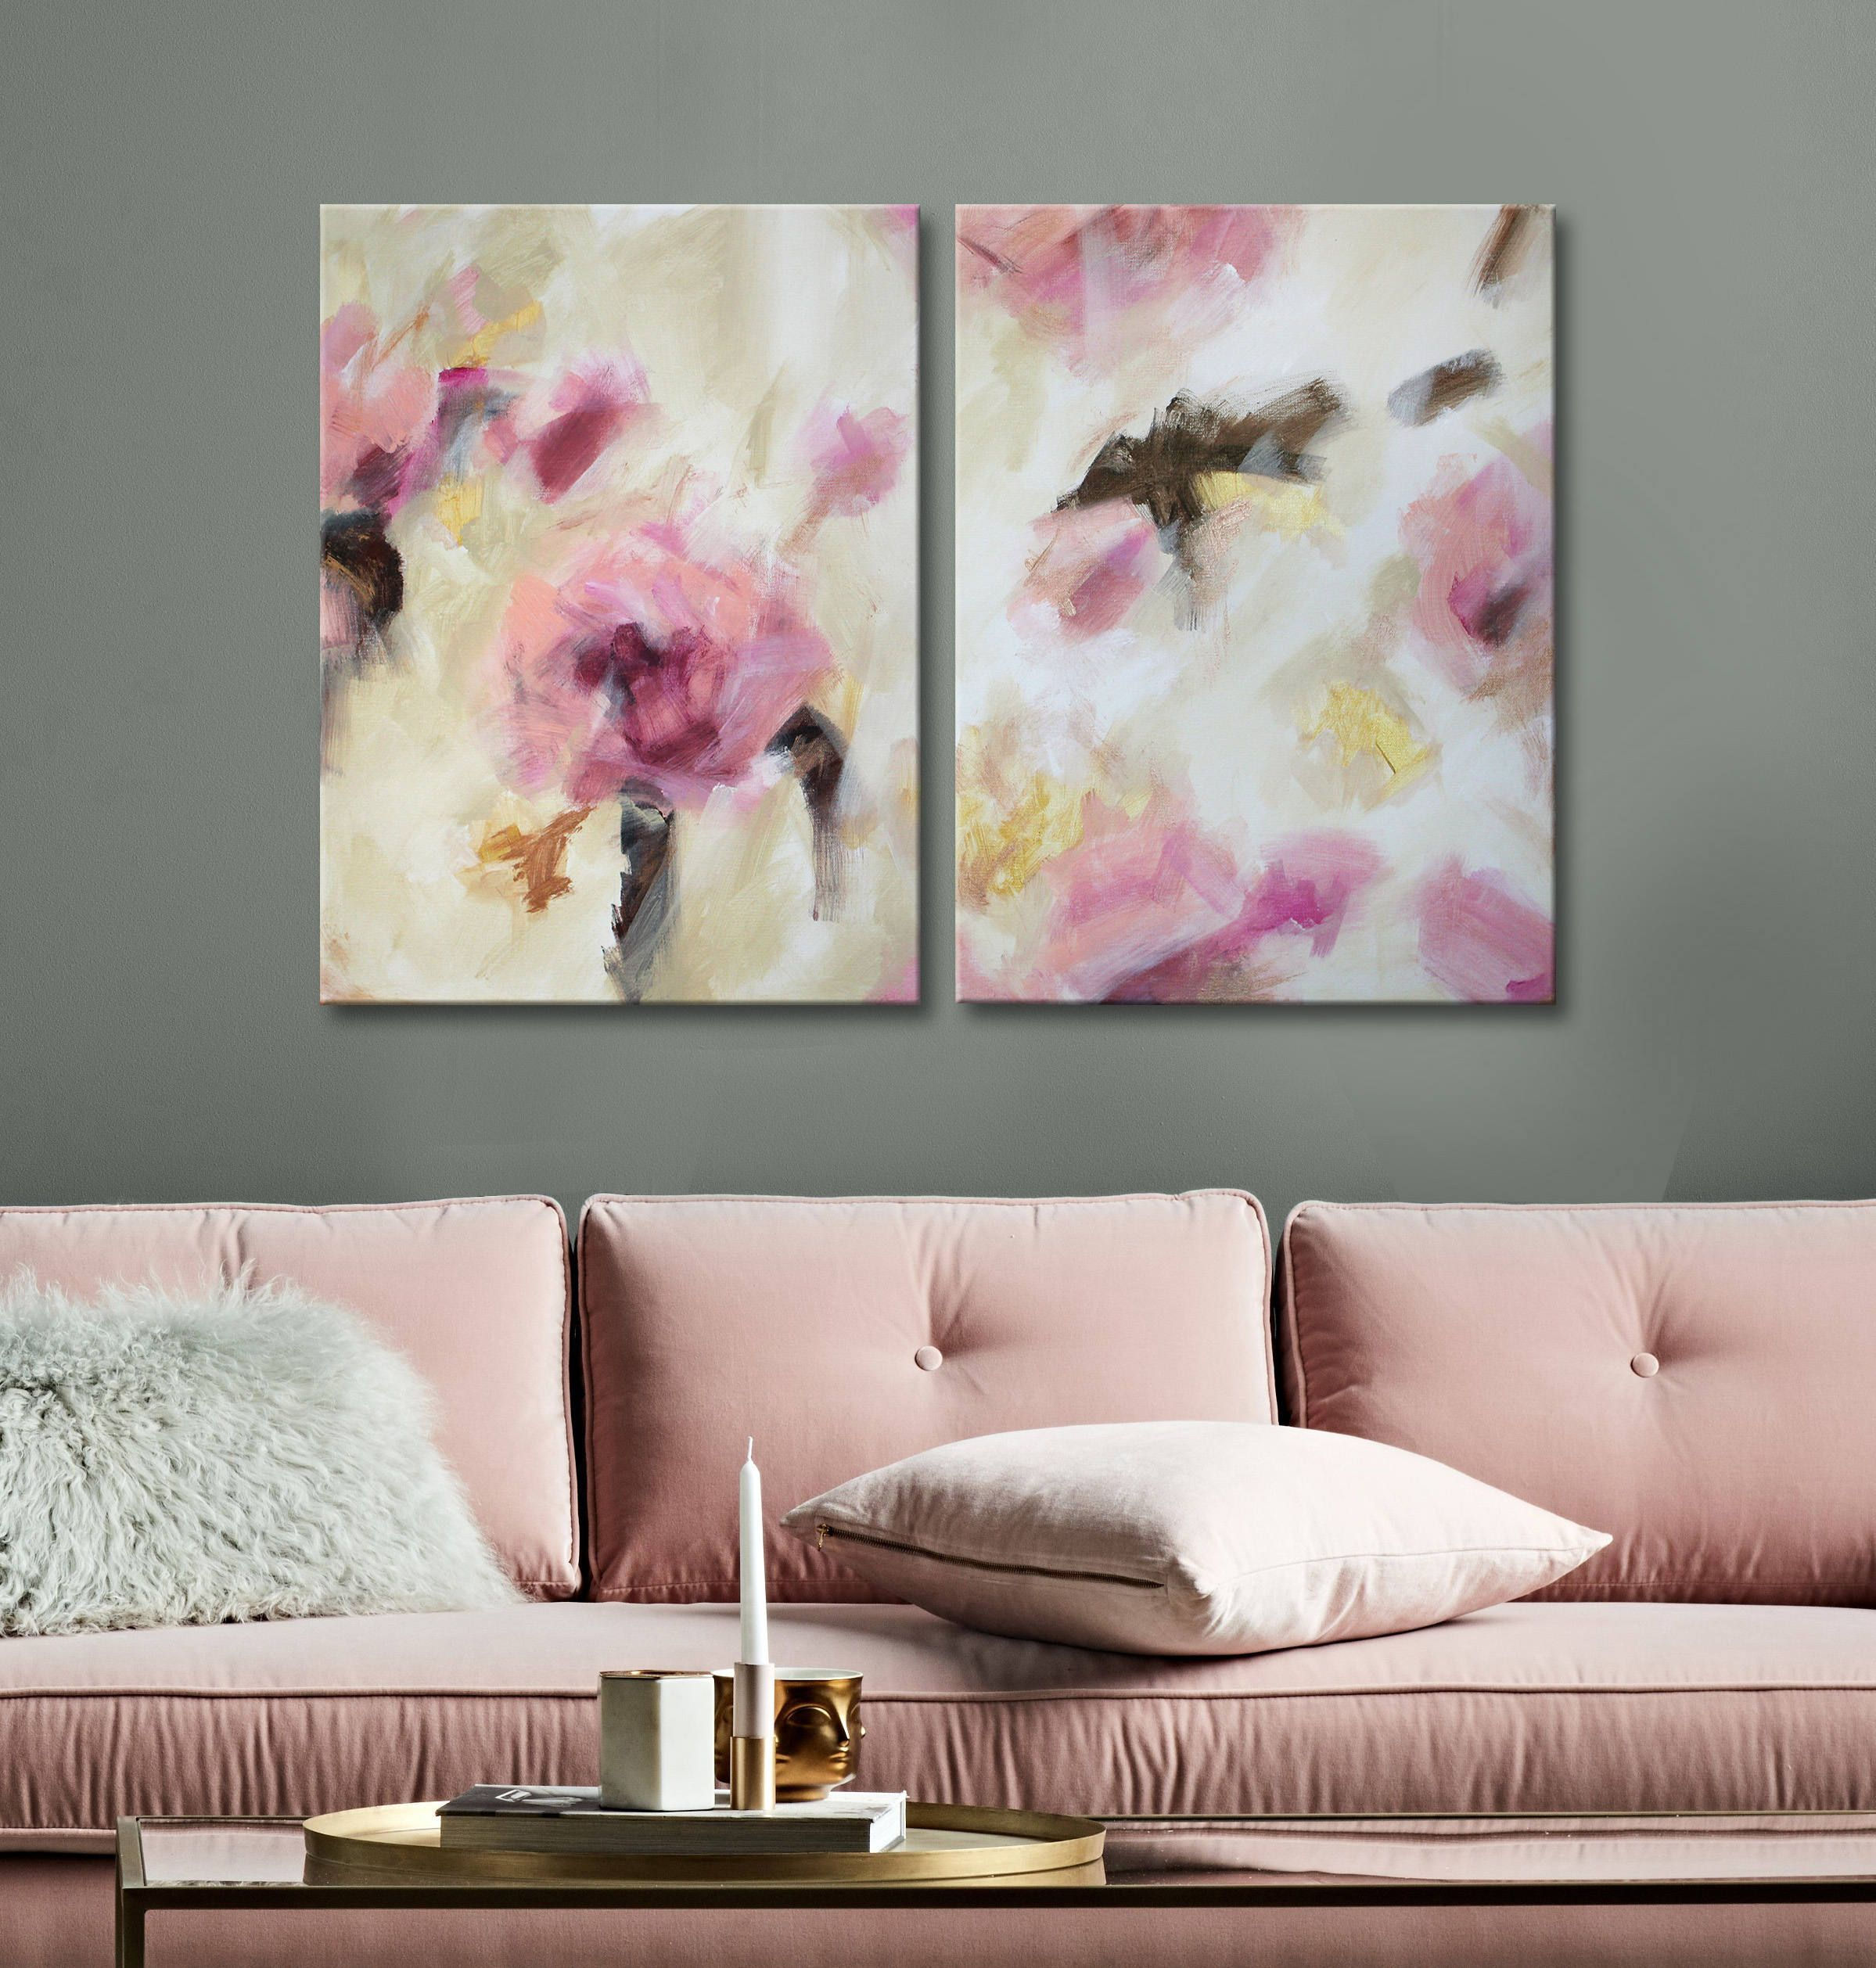 24x36 Two Piece Original Abstract Painting Large Dining Room Wall Art Wall Art Canvas Painting Gold Wall Decor